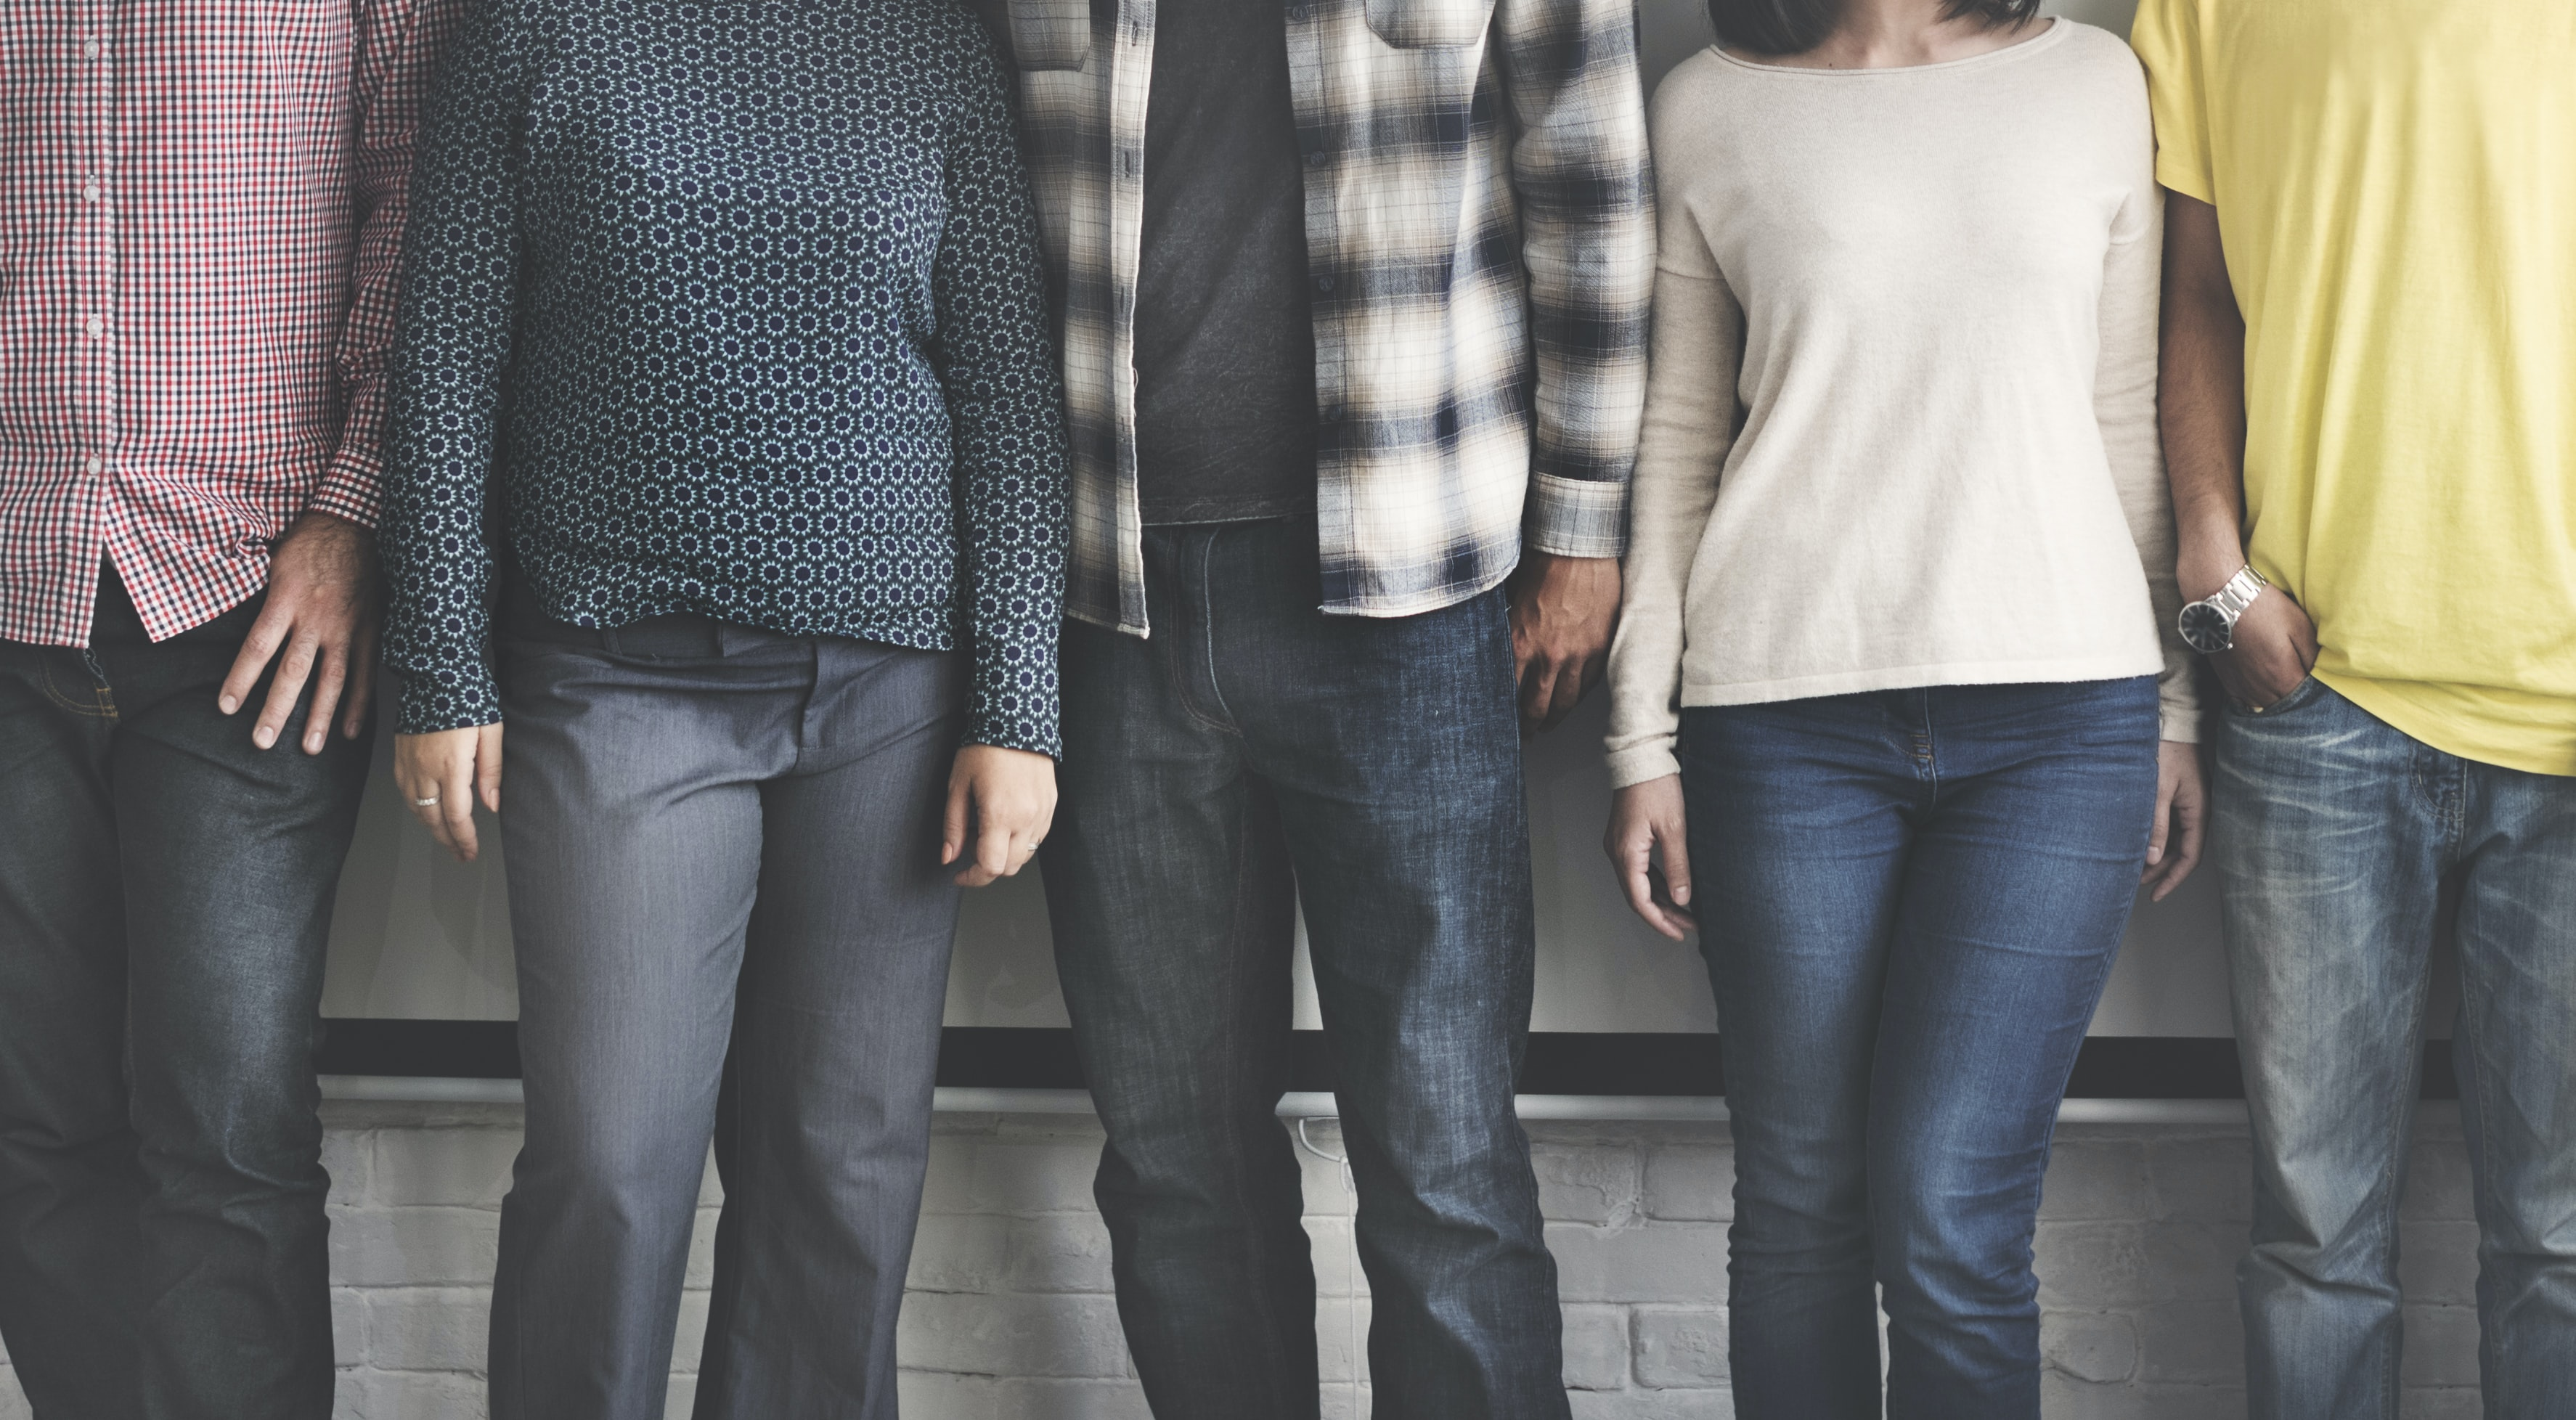 5 ways to hire the best employees for your business